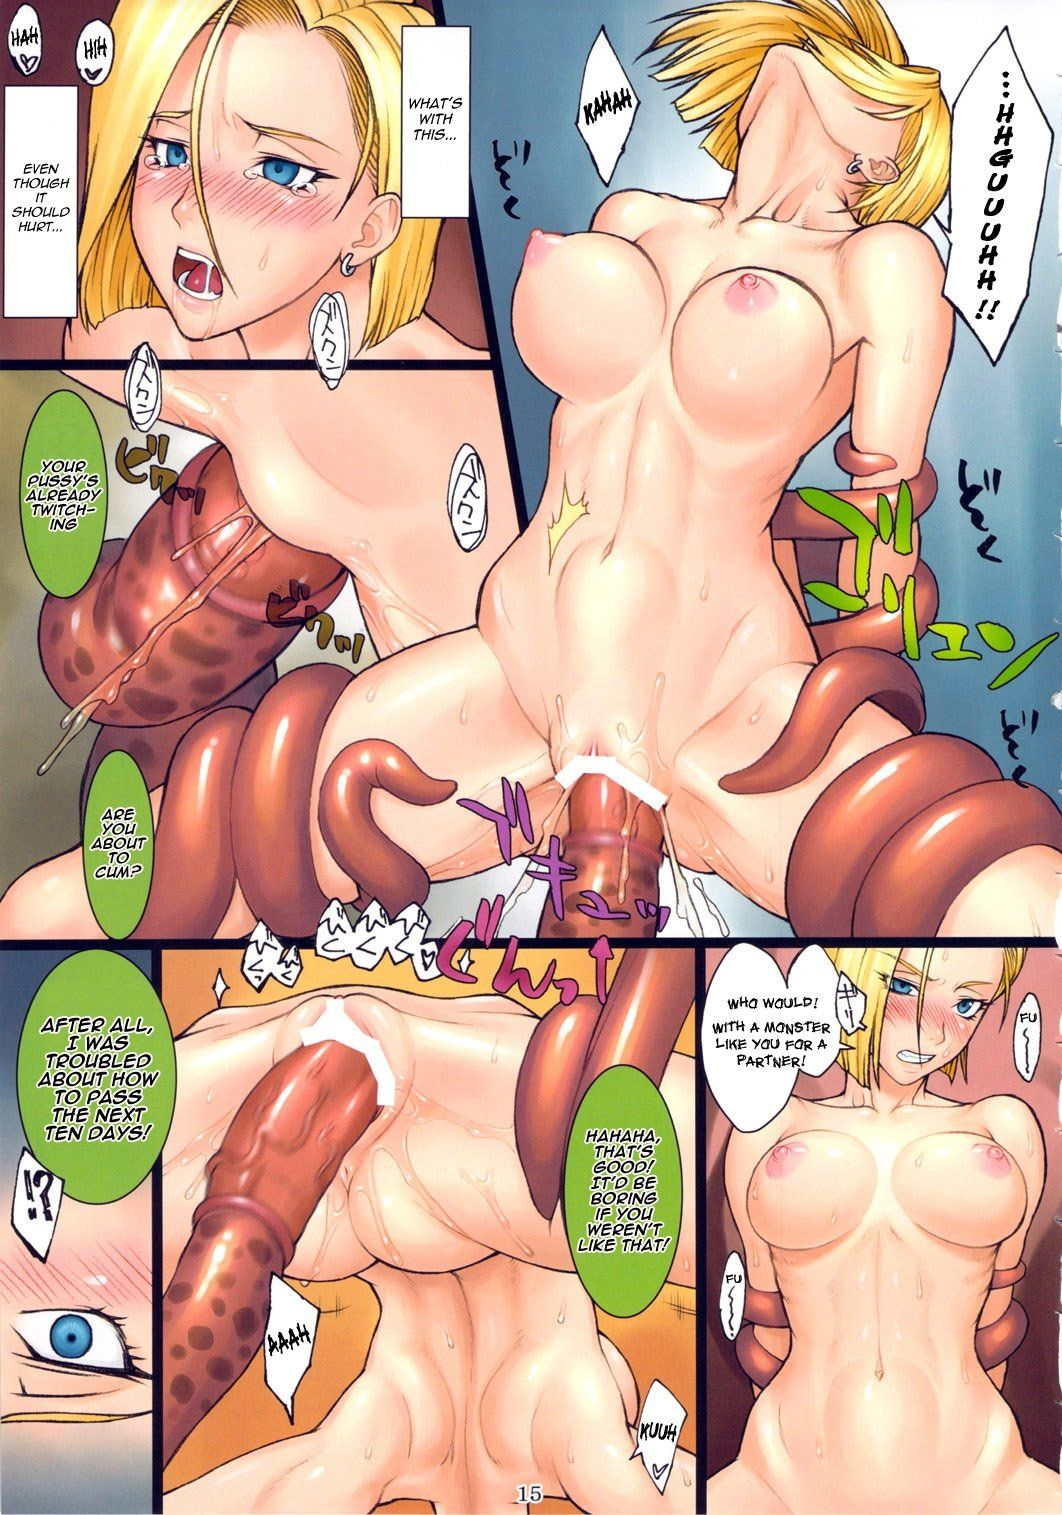 Android Anime Porn cell fucks android 18 hentai - naked photo. comments: 2